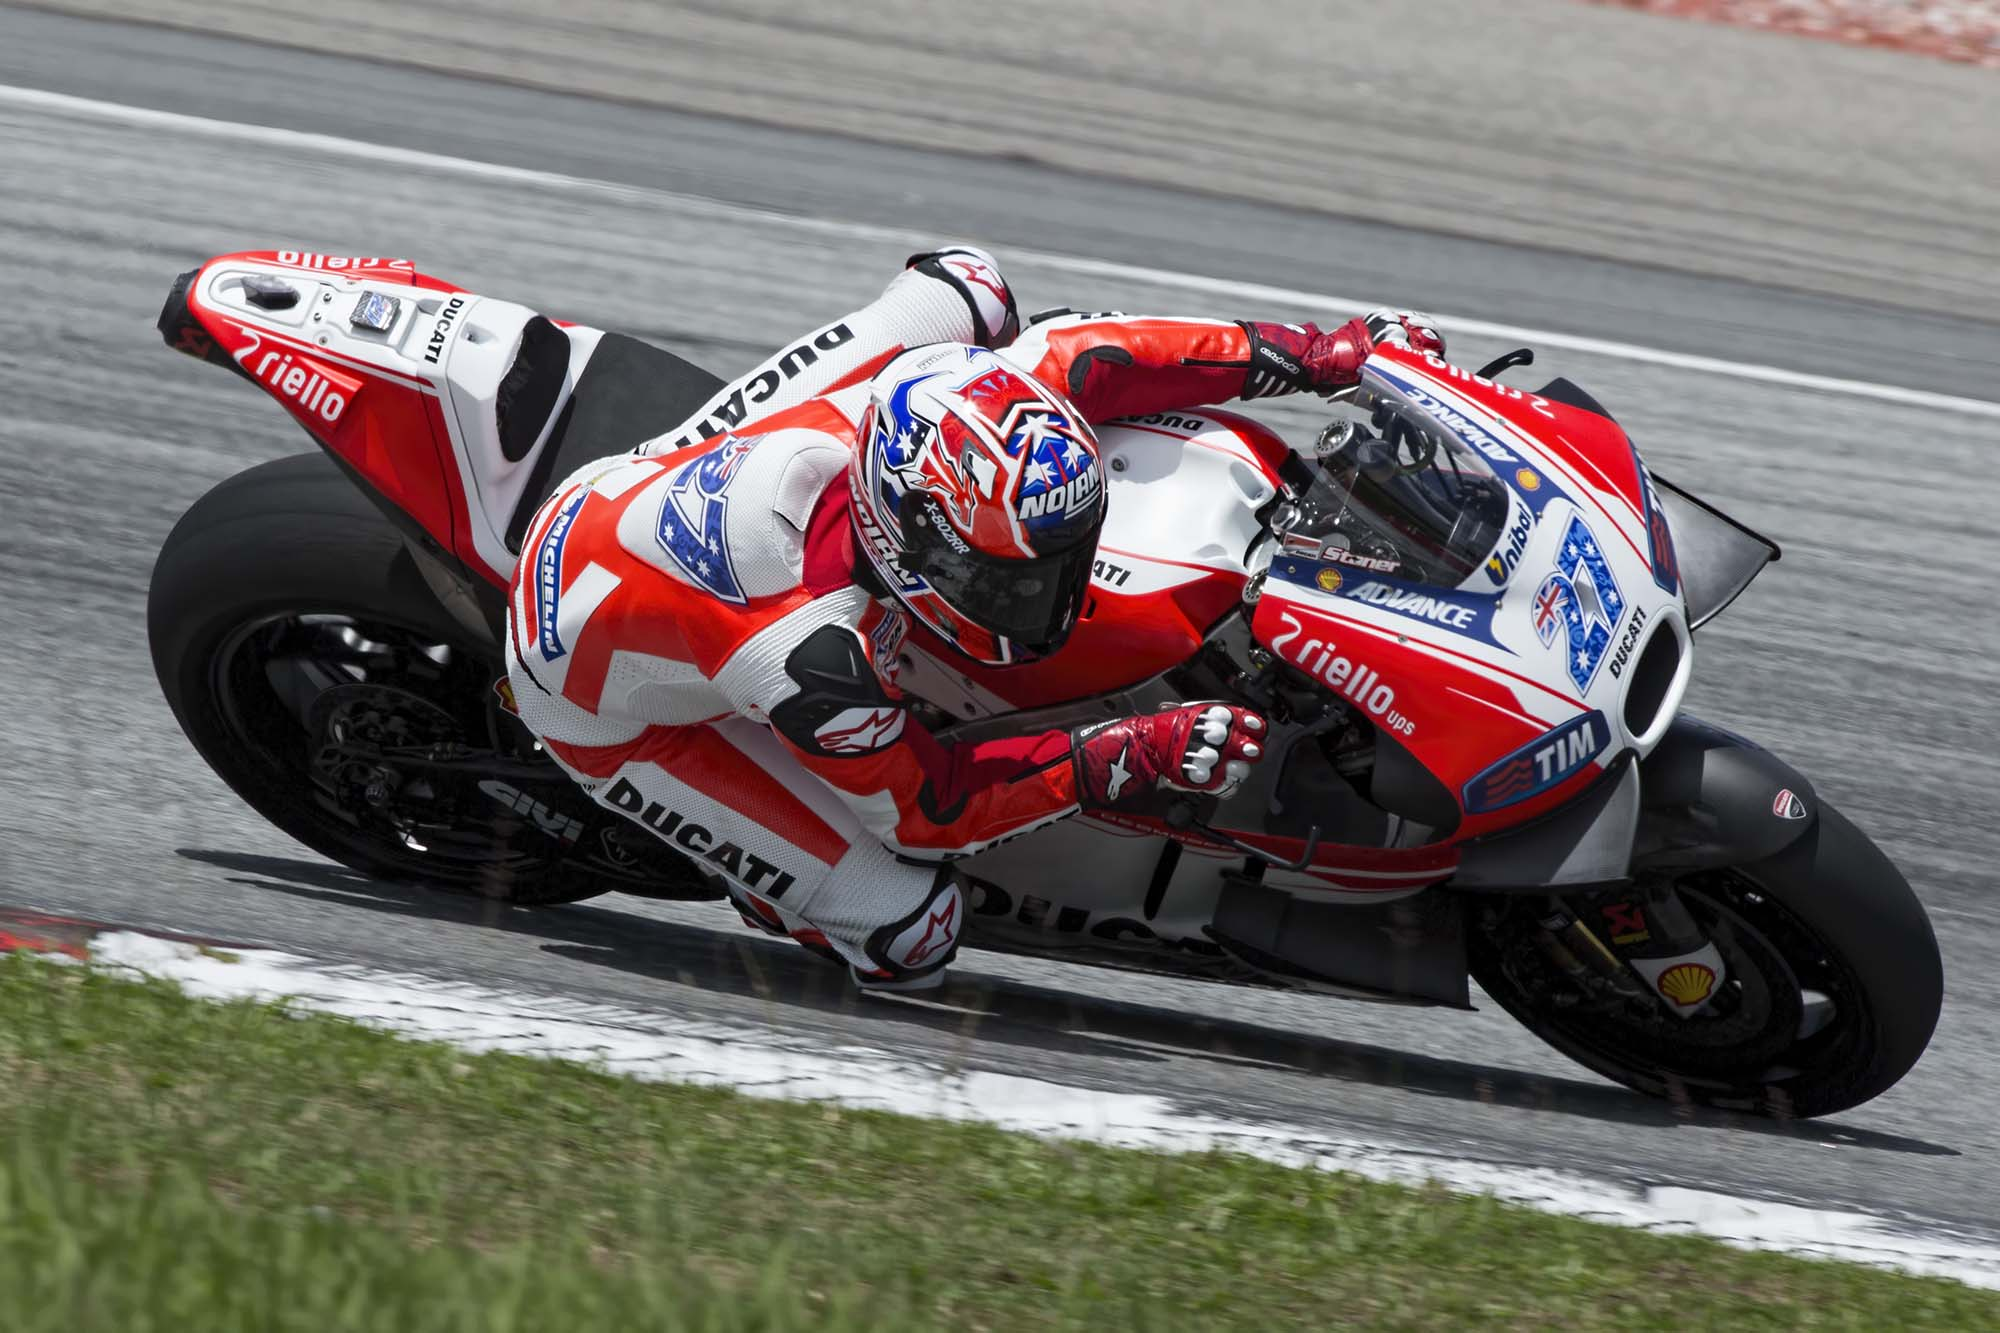 Casey Stoner's First Day Back at Ducati Was A Success